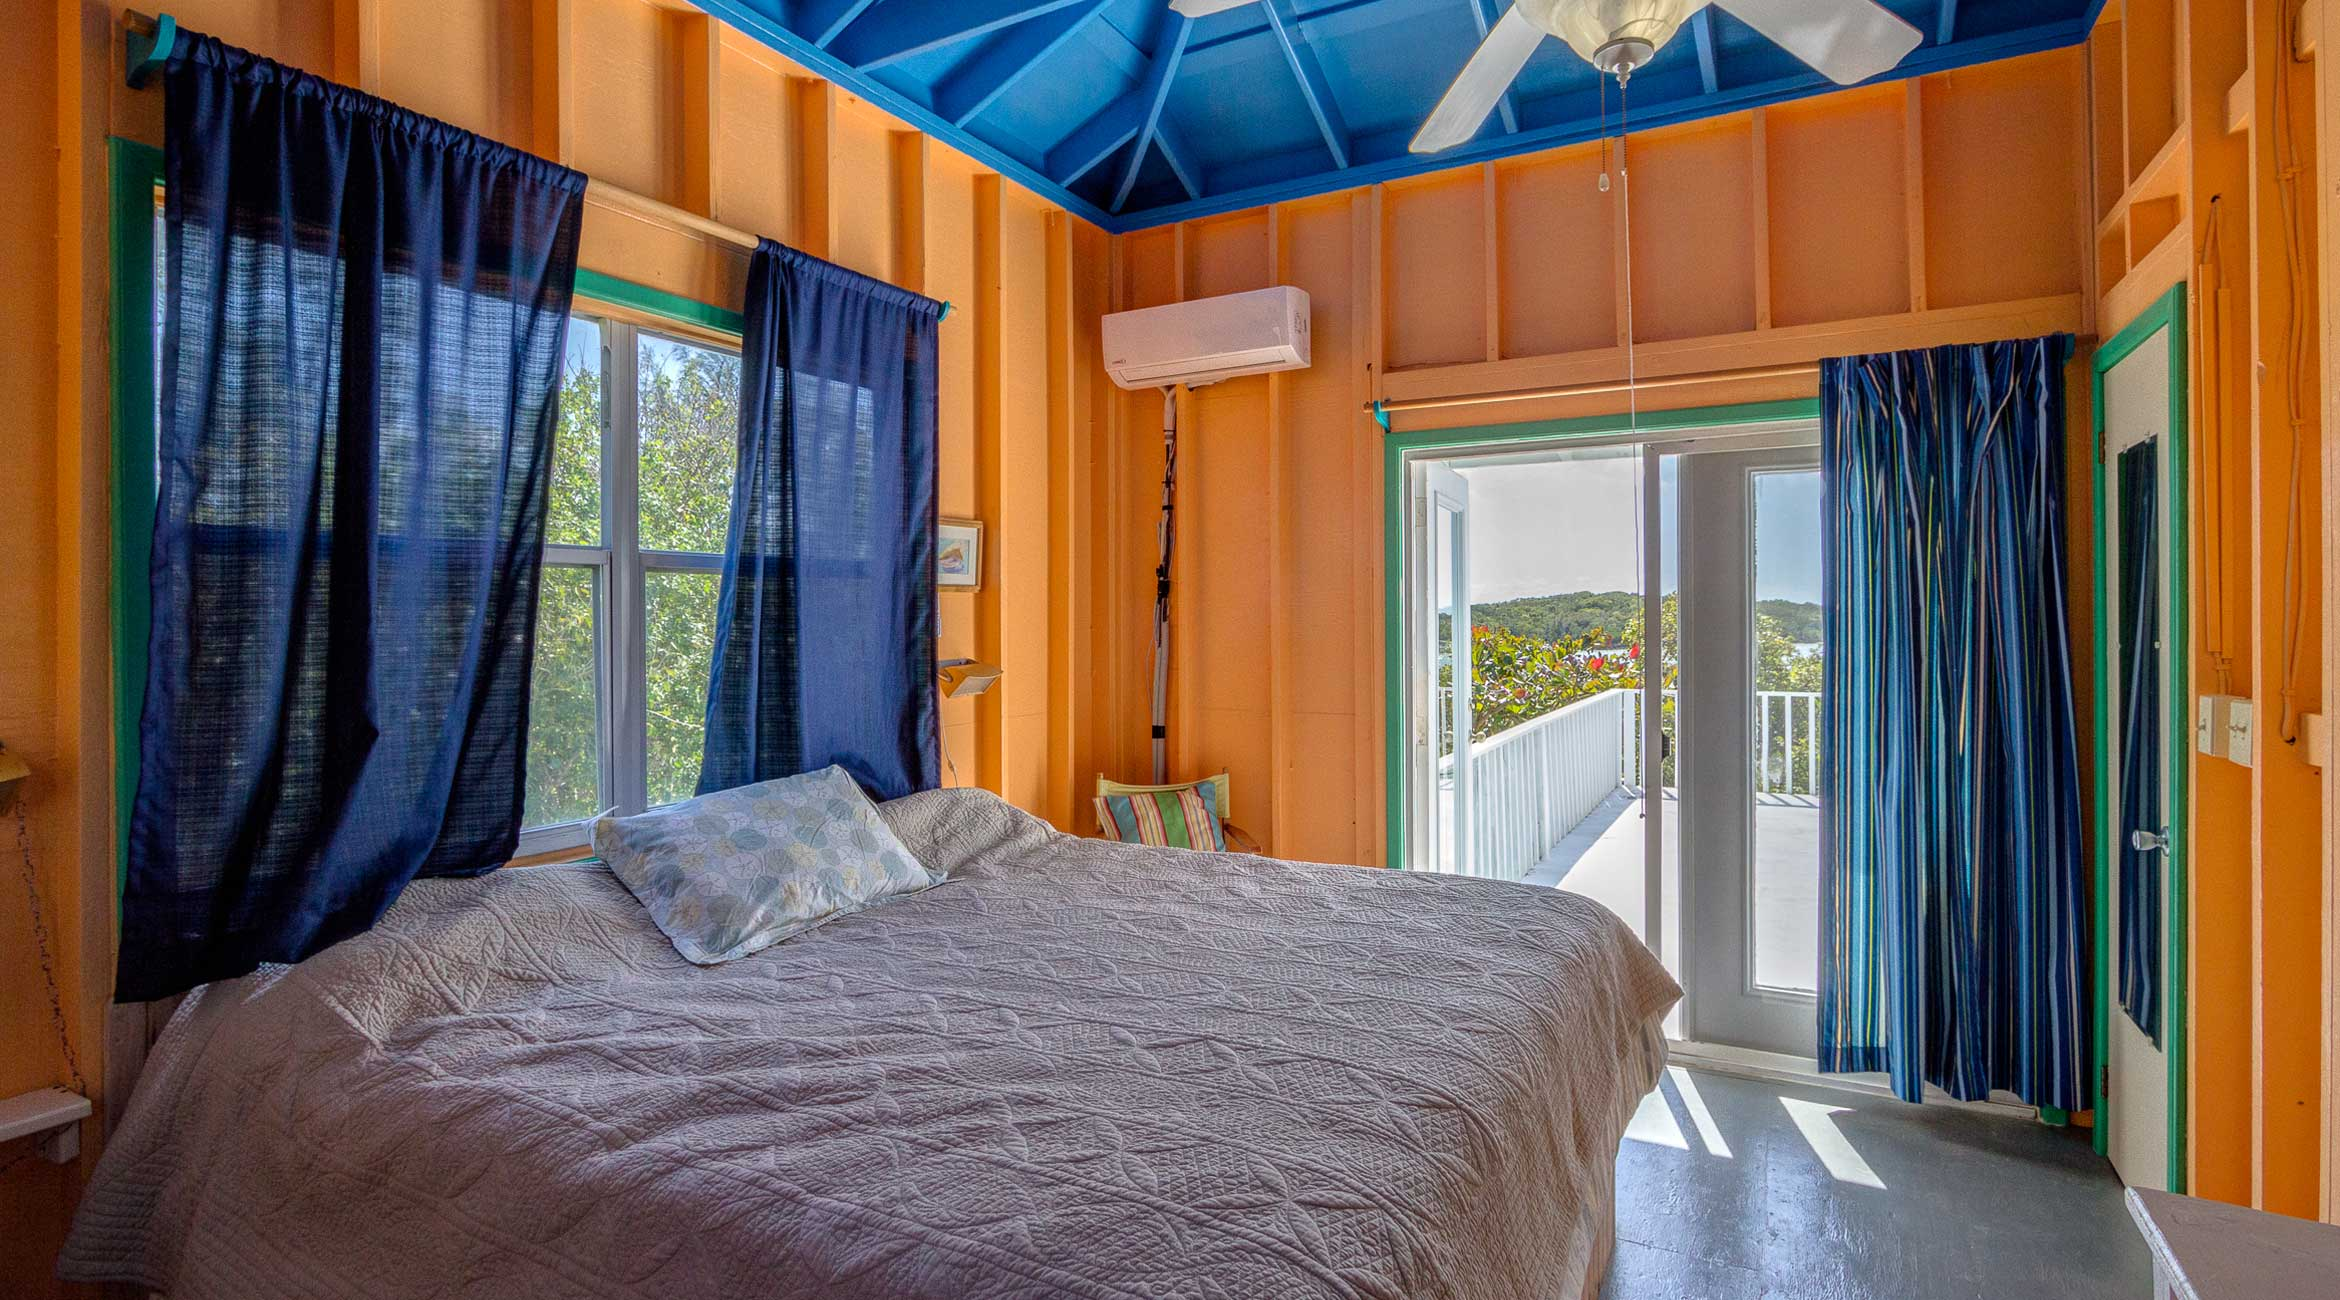 Blue Coral Landing Vacation Rental on Great Guana Cay